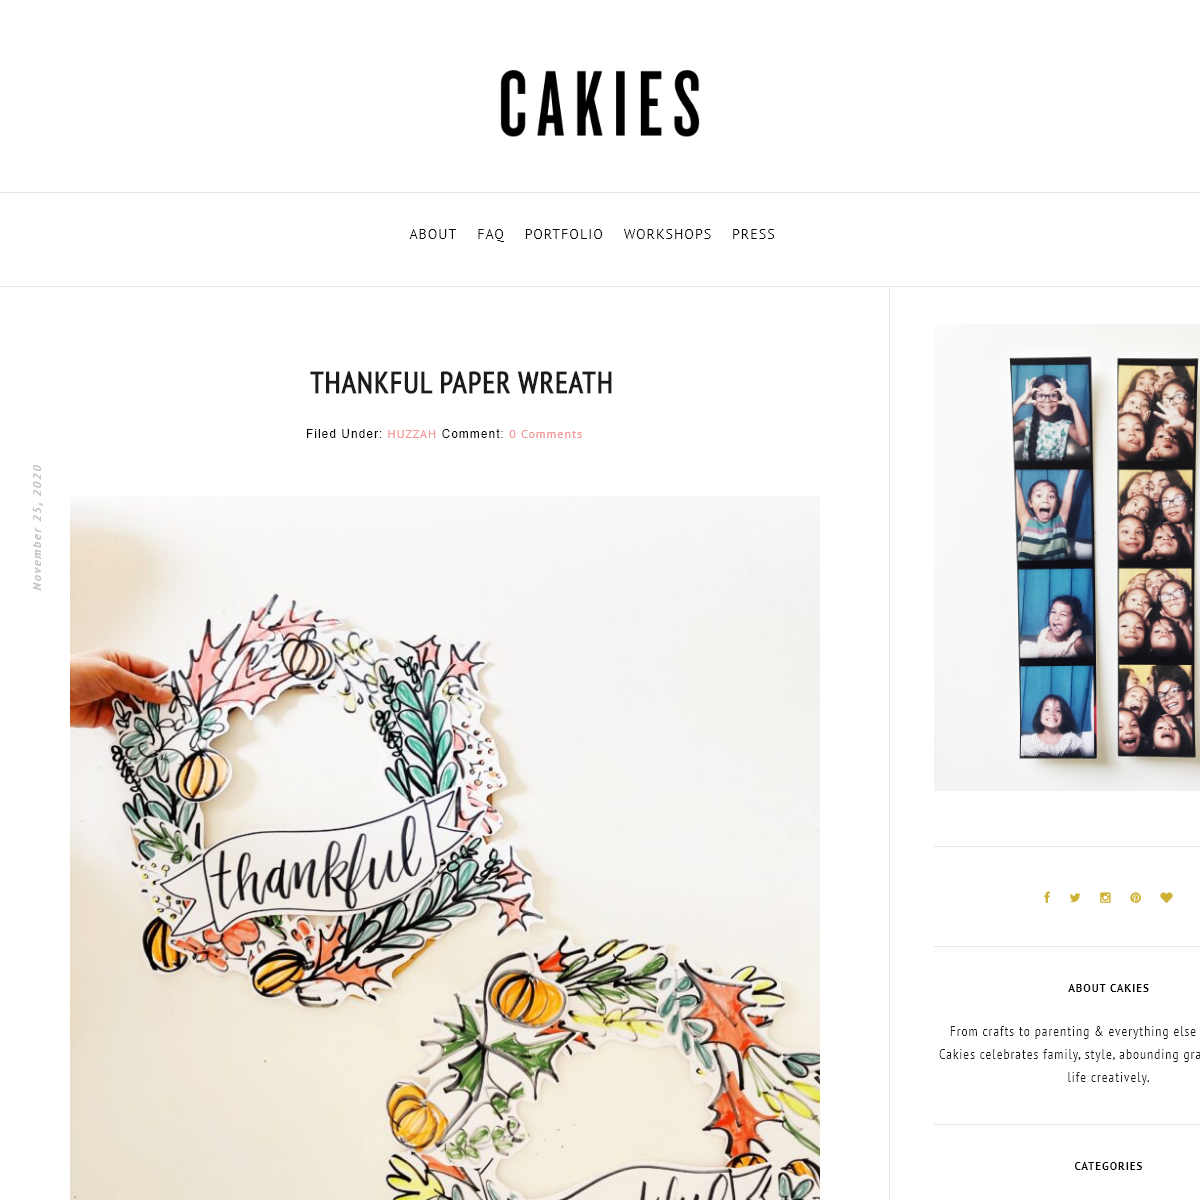 CAKIES - crafts to parenting & everything else in between